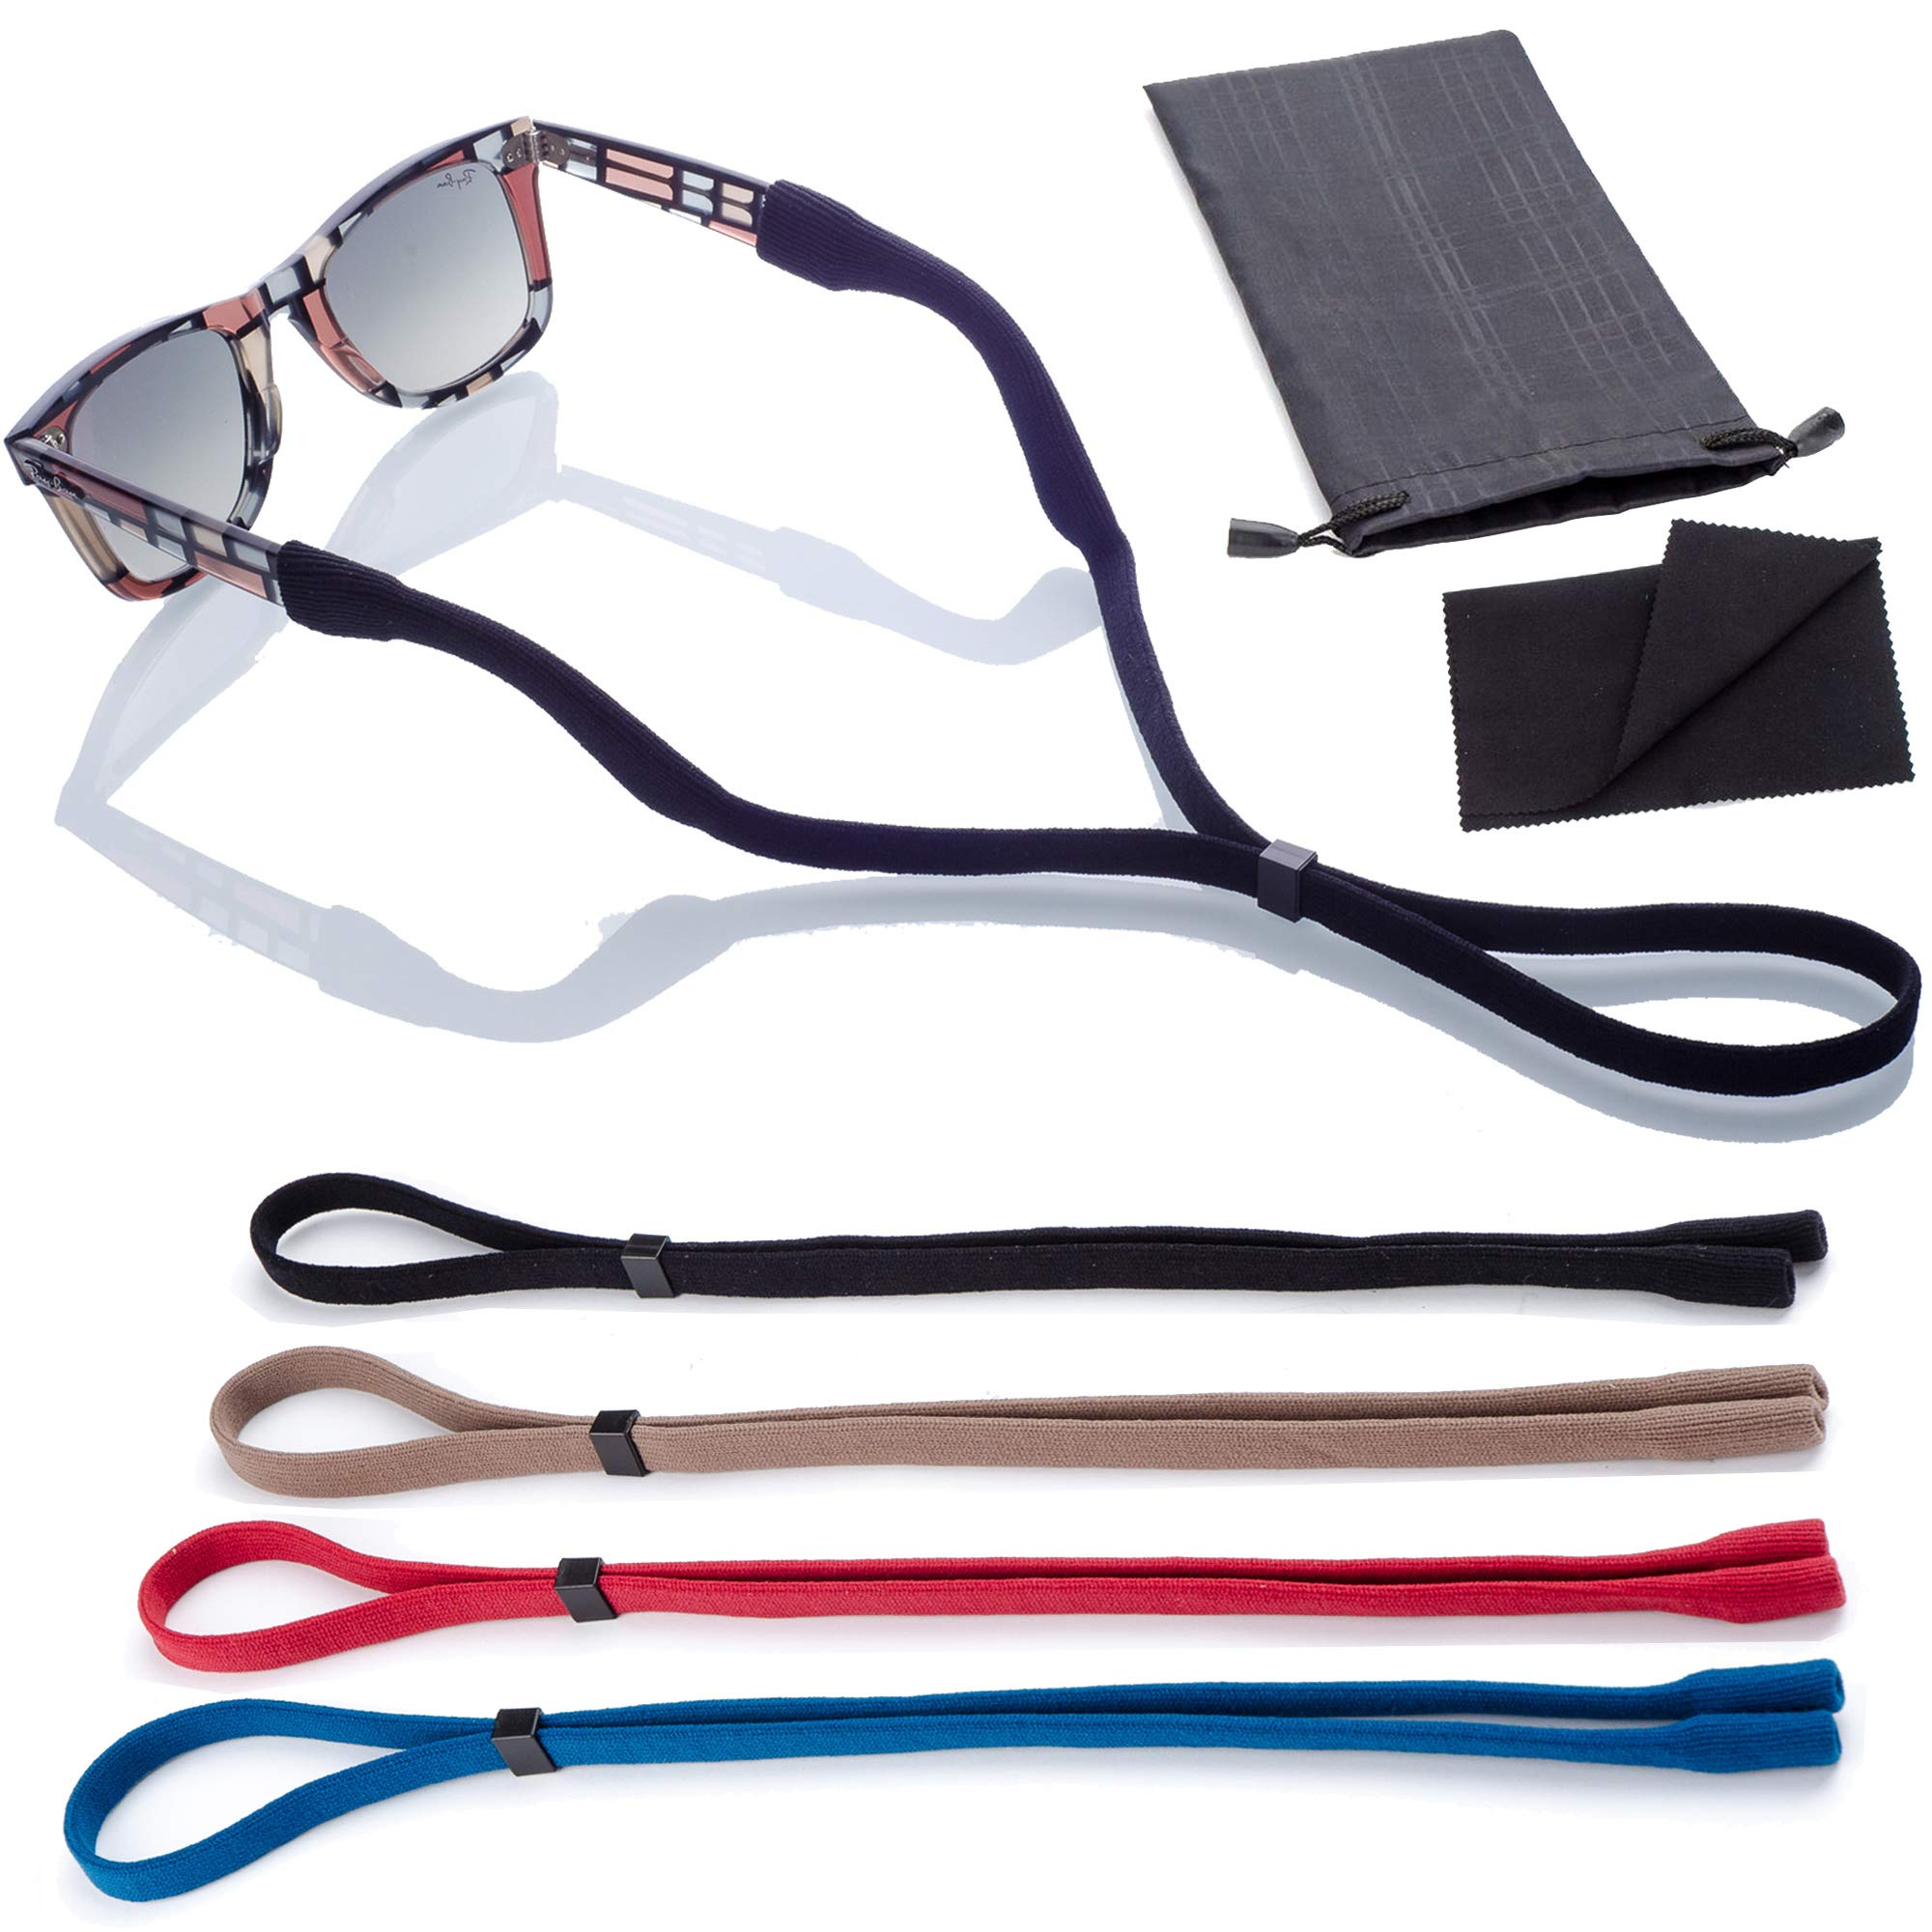 Sunglass Glasses Straps | 4pk with Bonus Case/Cloth | Adjustable and Universal Fit by Anchor Glasses Straps